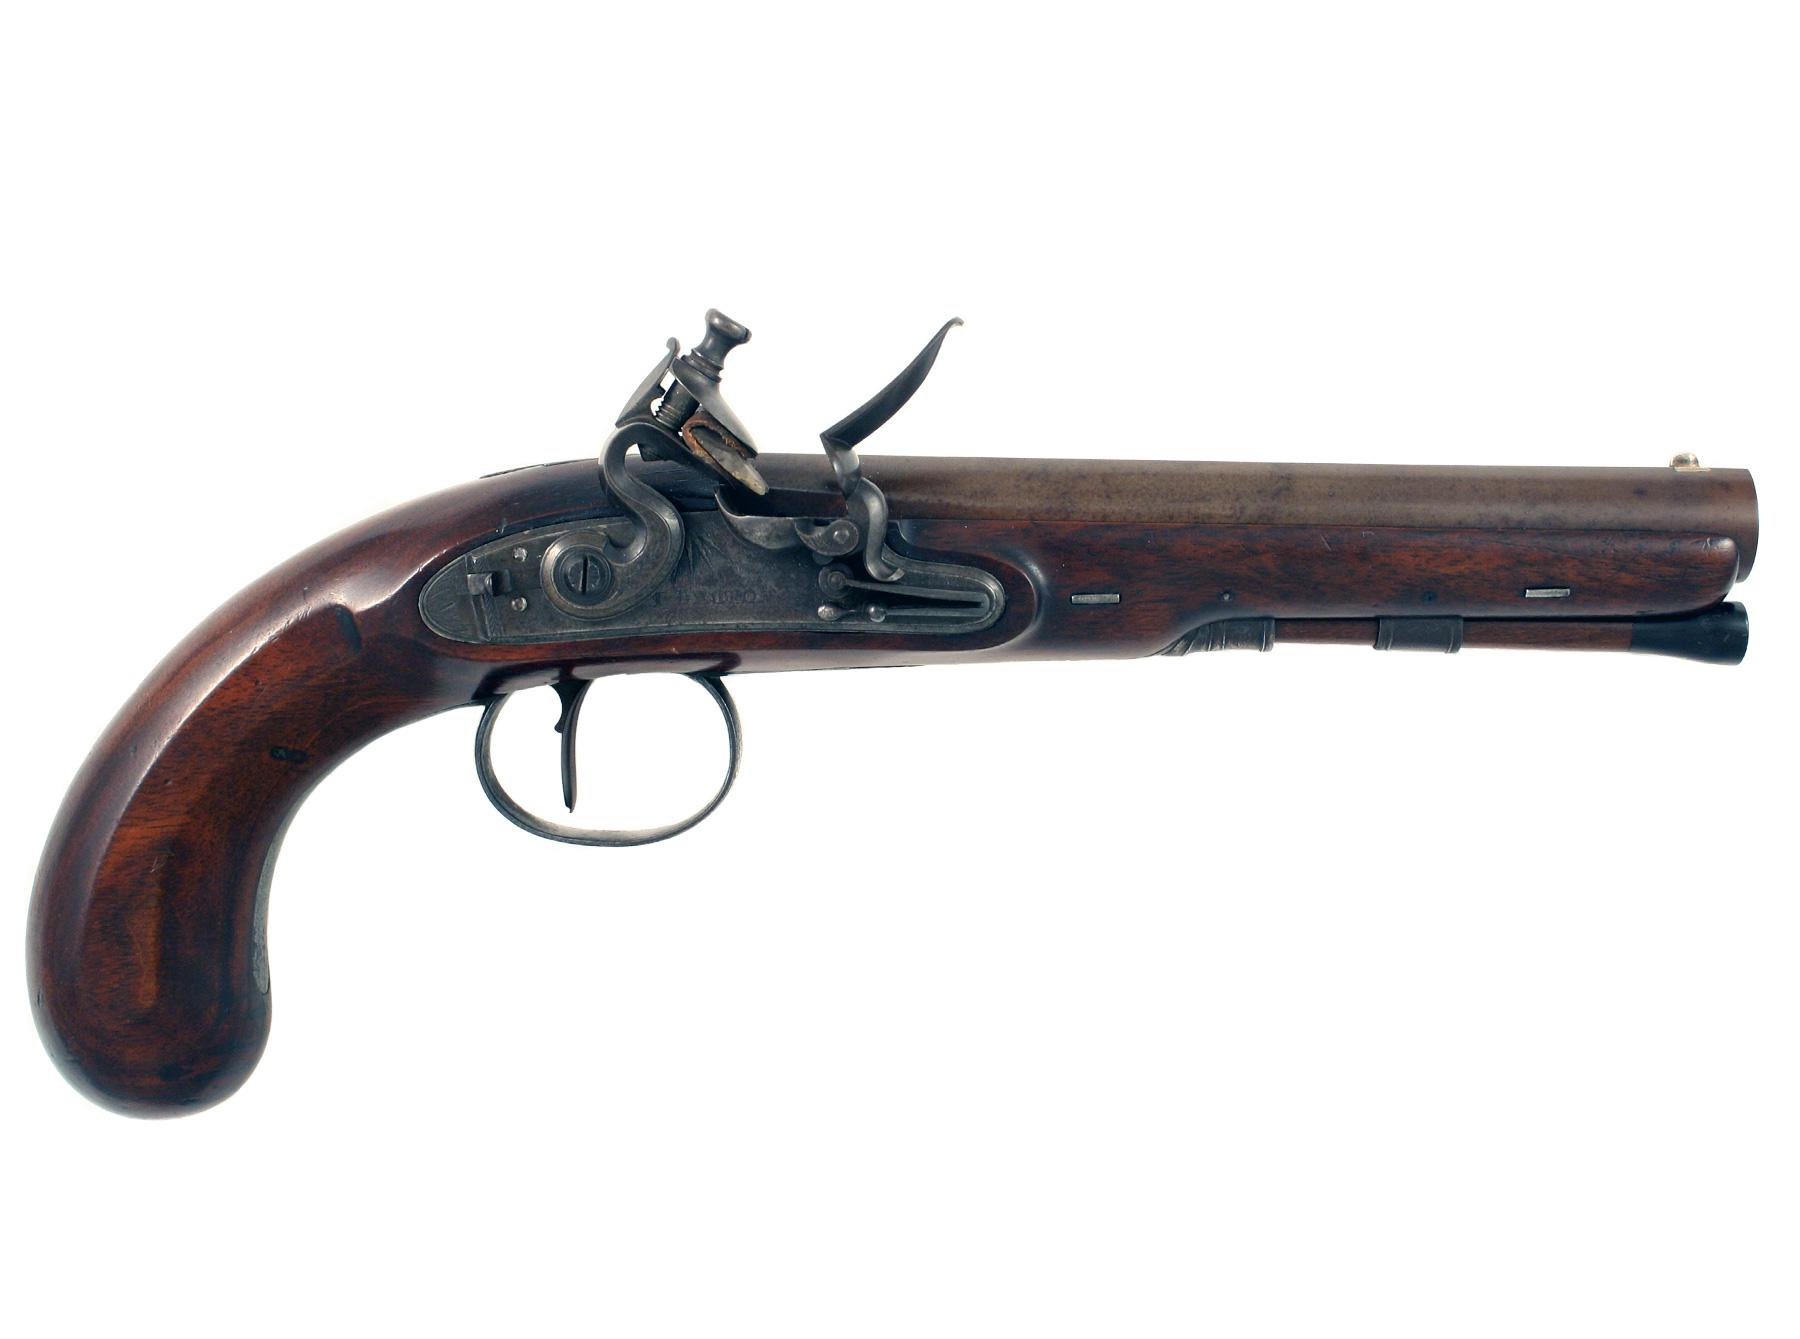 A Barton Flintlock Officers Pistol